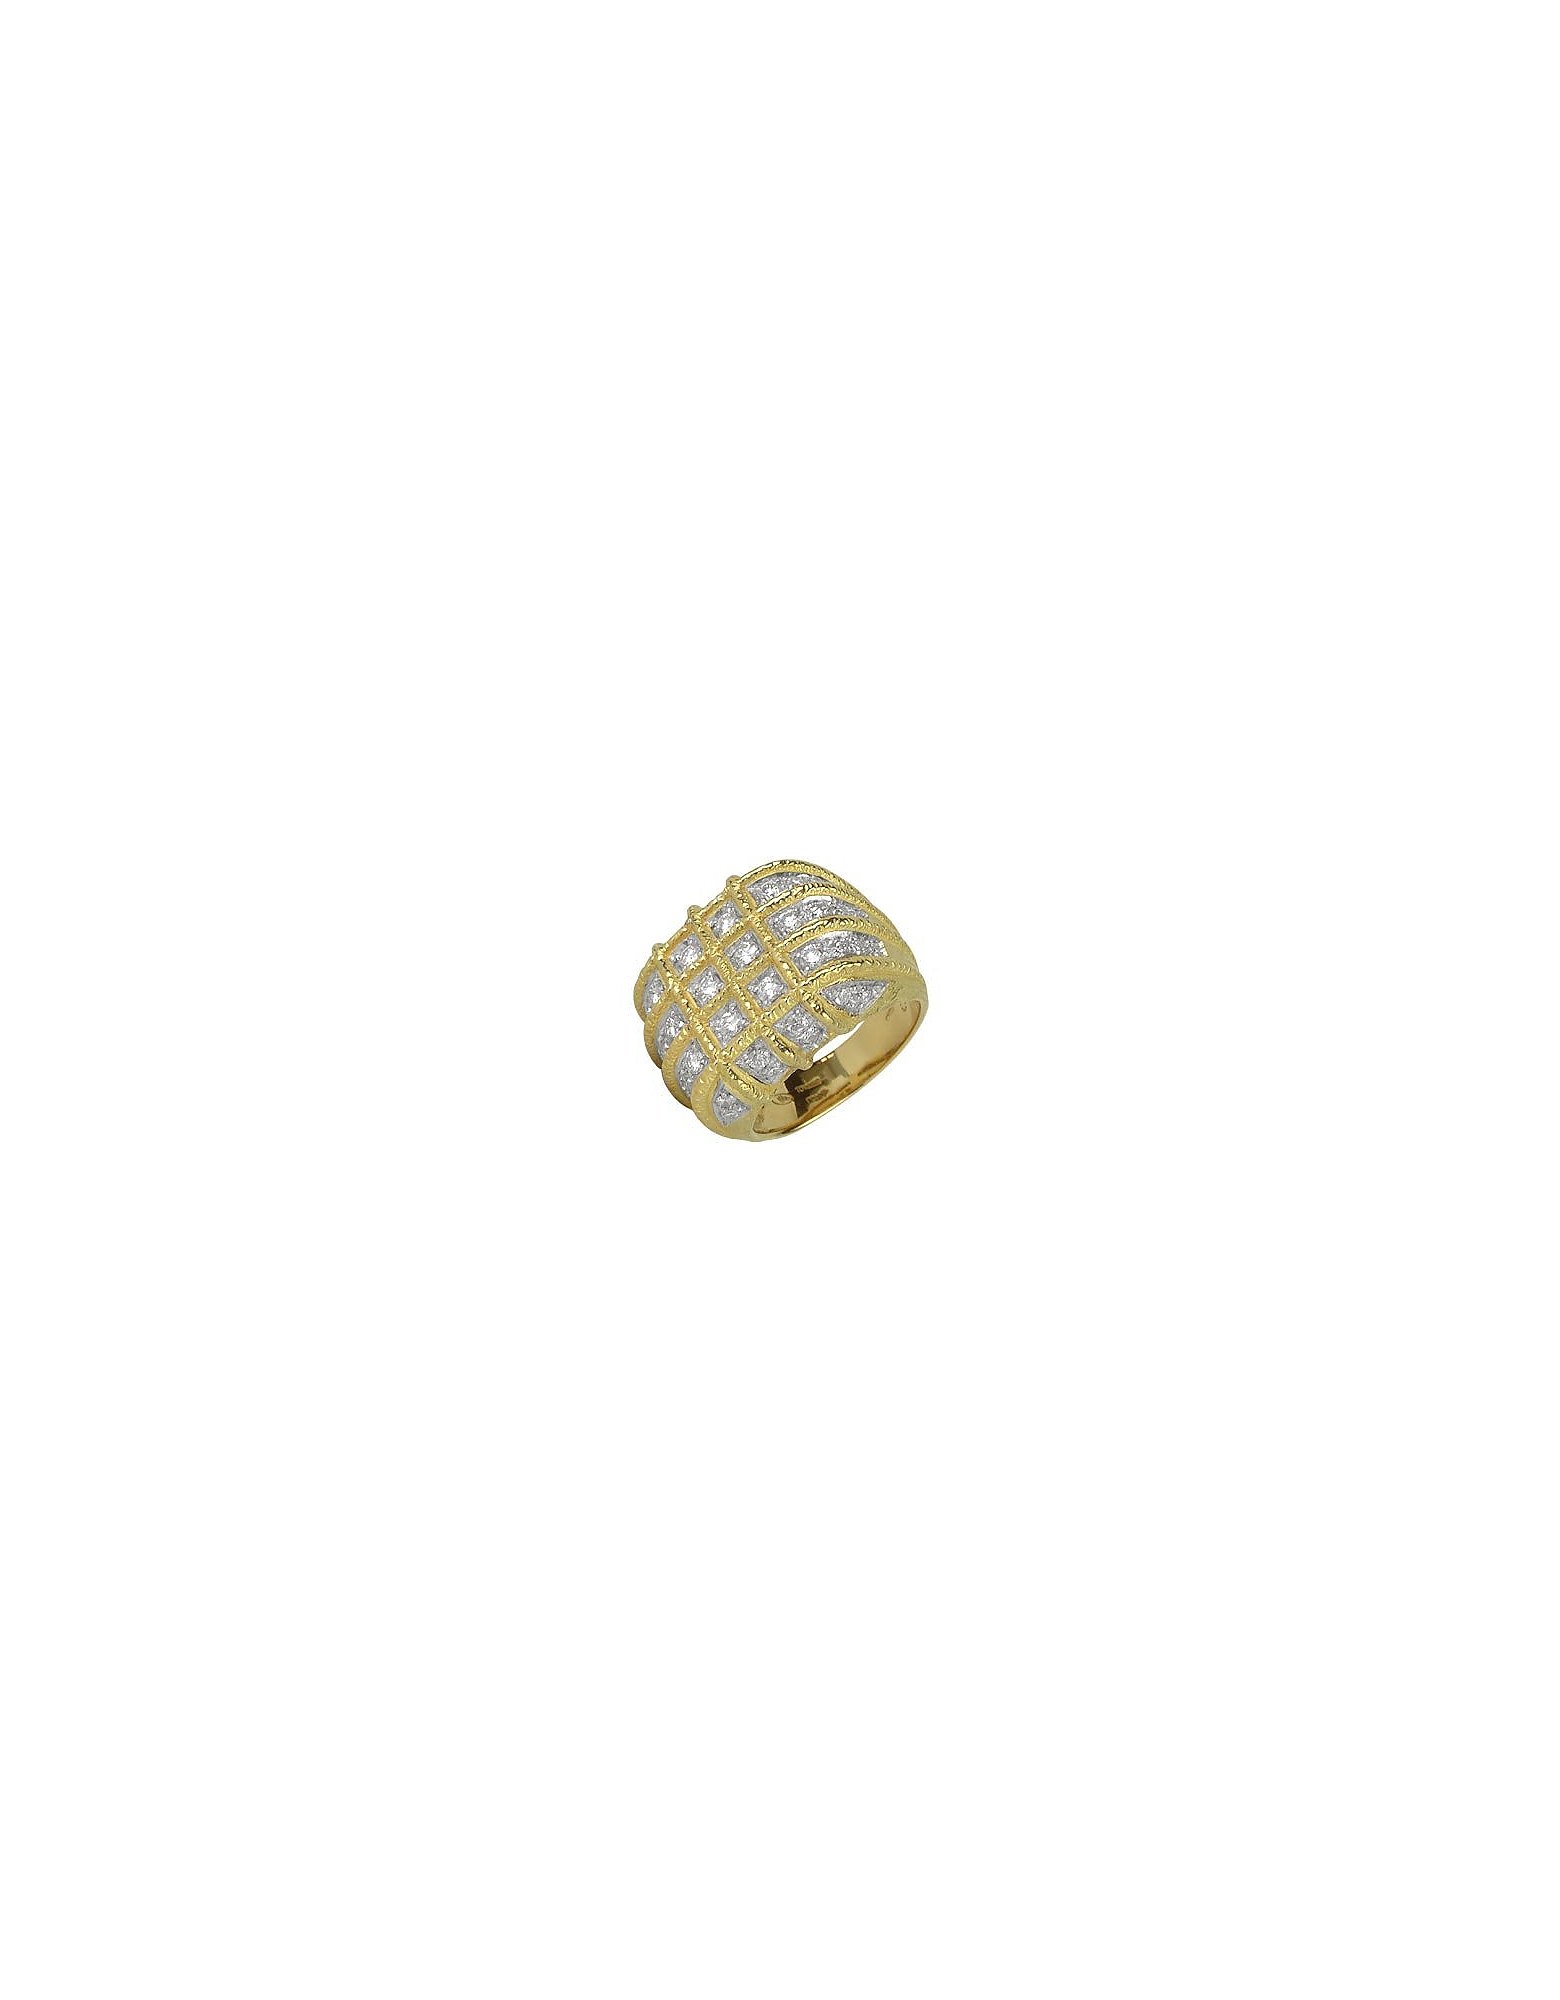 Torrini Rings, Wallstreet - 18K Yellow Gold Diamond Ring